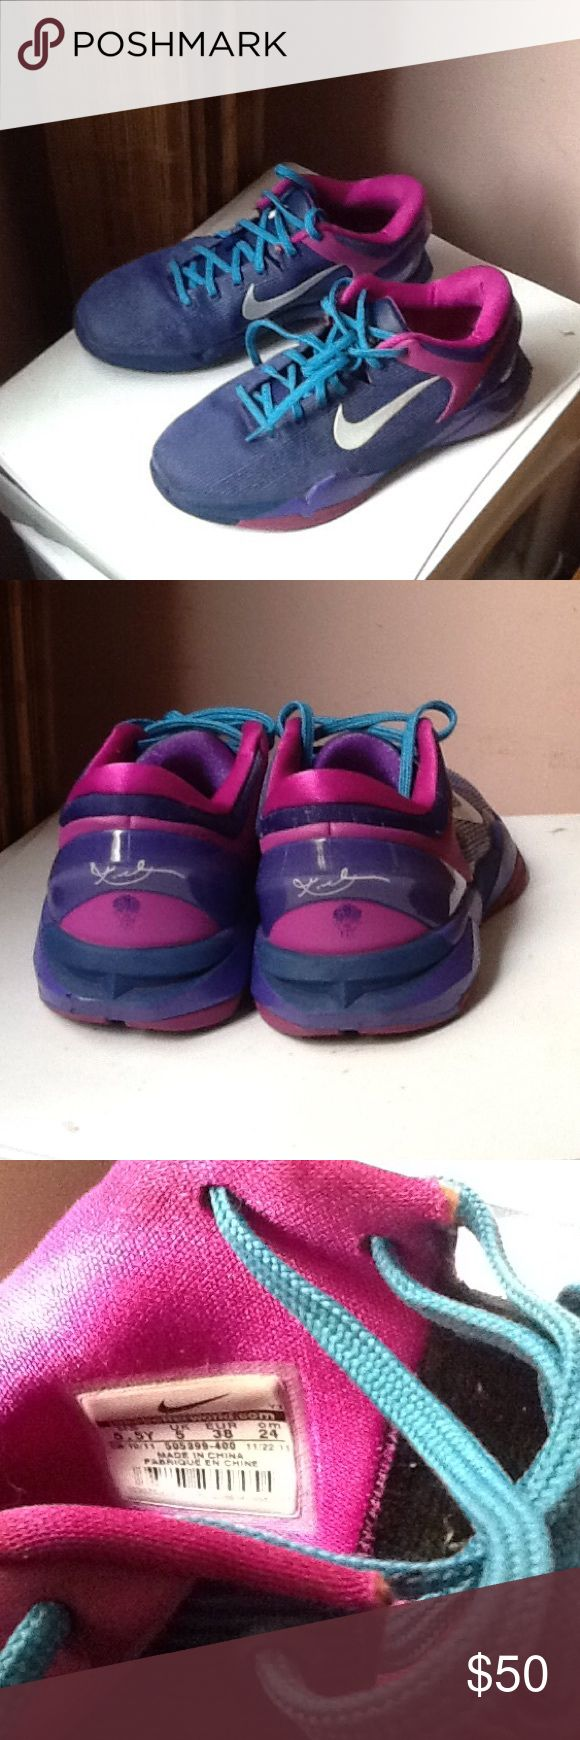 Nike Kobe 7 Sneakers Never worn brand new Nike Kobe 7 sneakers. Smoke-free home.  No box. Size: Youth 5.5 will fit woman size 7.5. Nike Shoes Sneakers